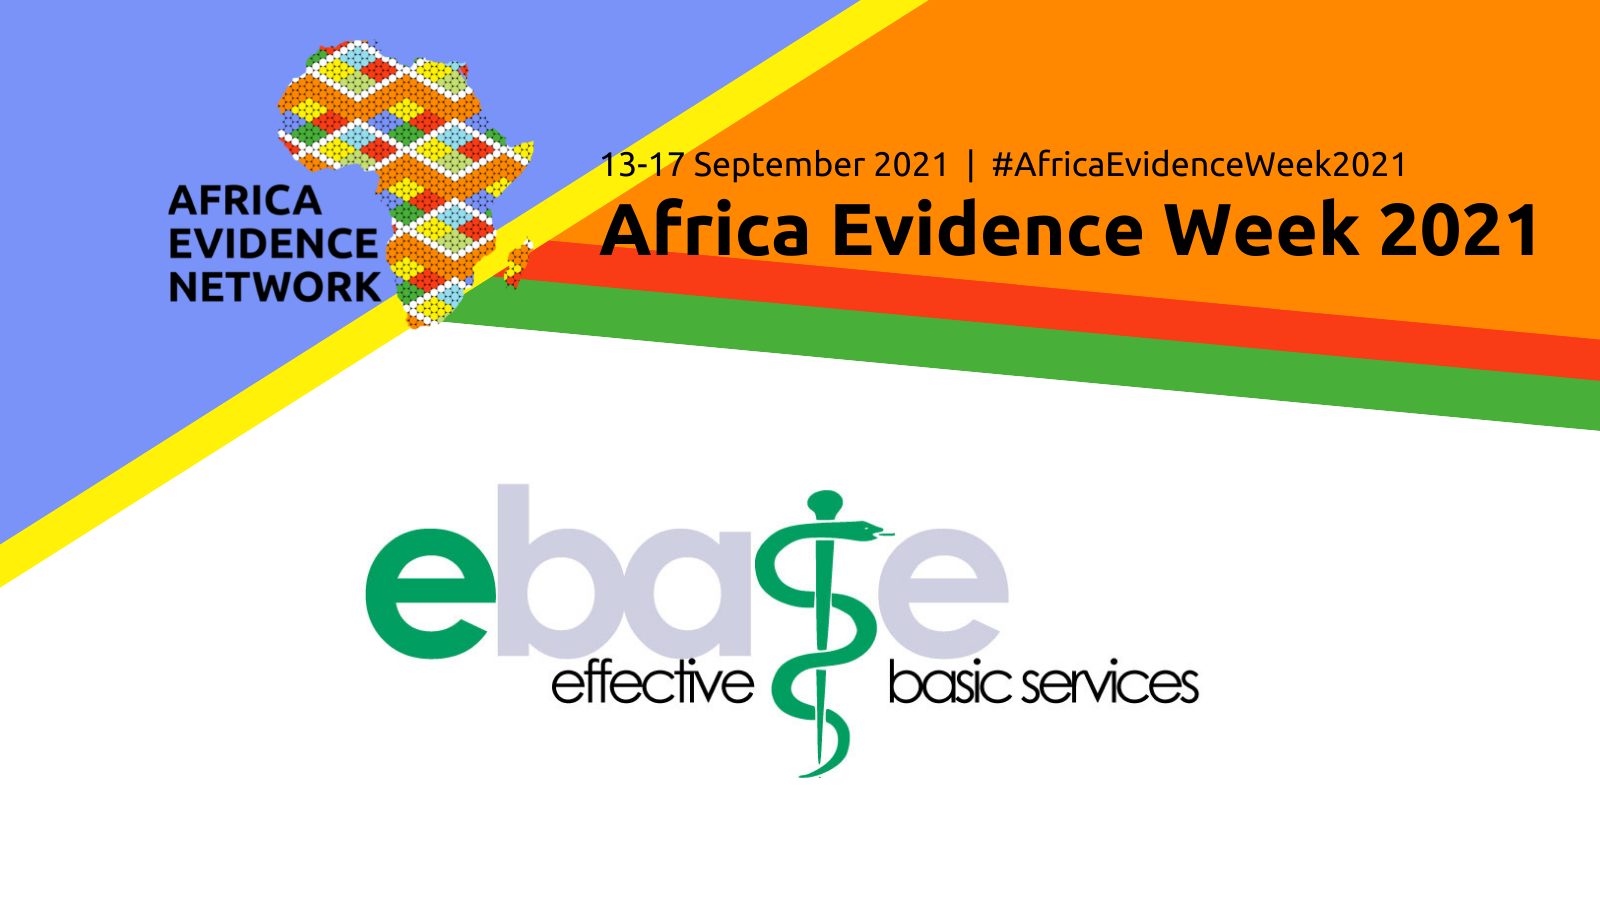 Africa Evidence Week 2021 event: Taking Evidence to French Speakers in Middle Africa through the Africa Evidence Network